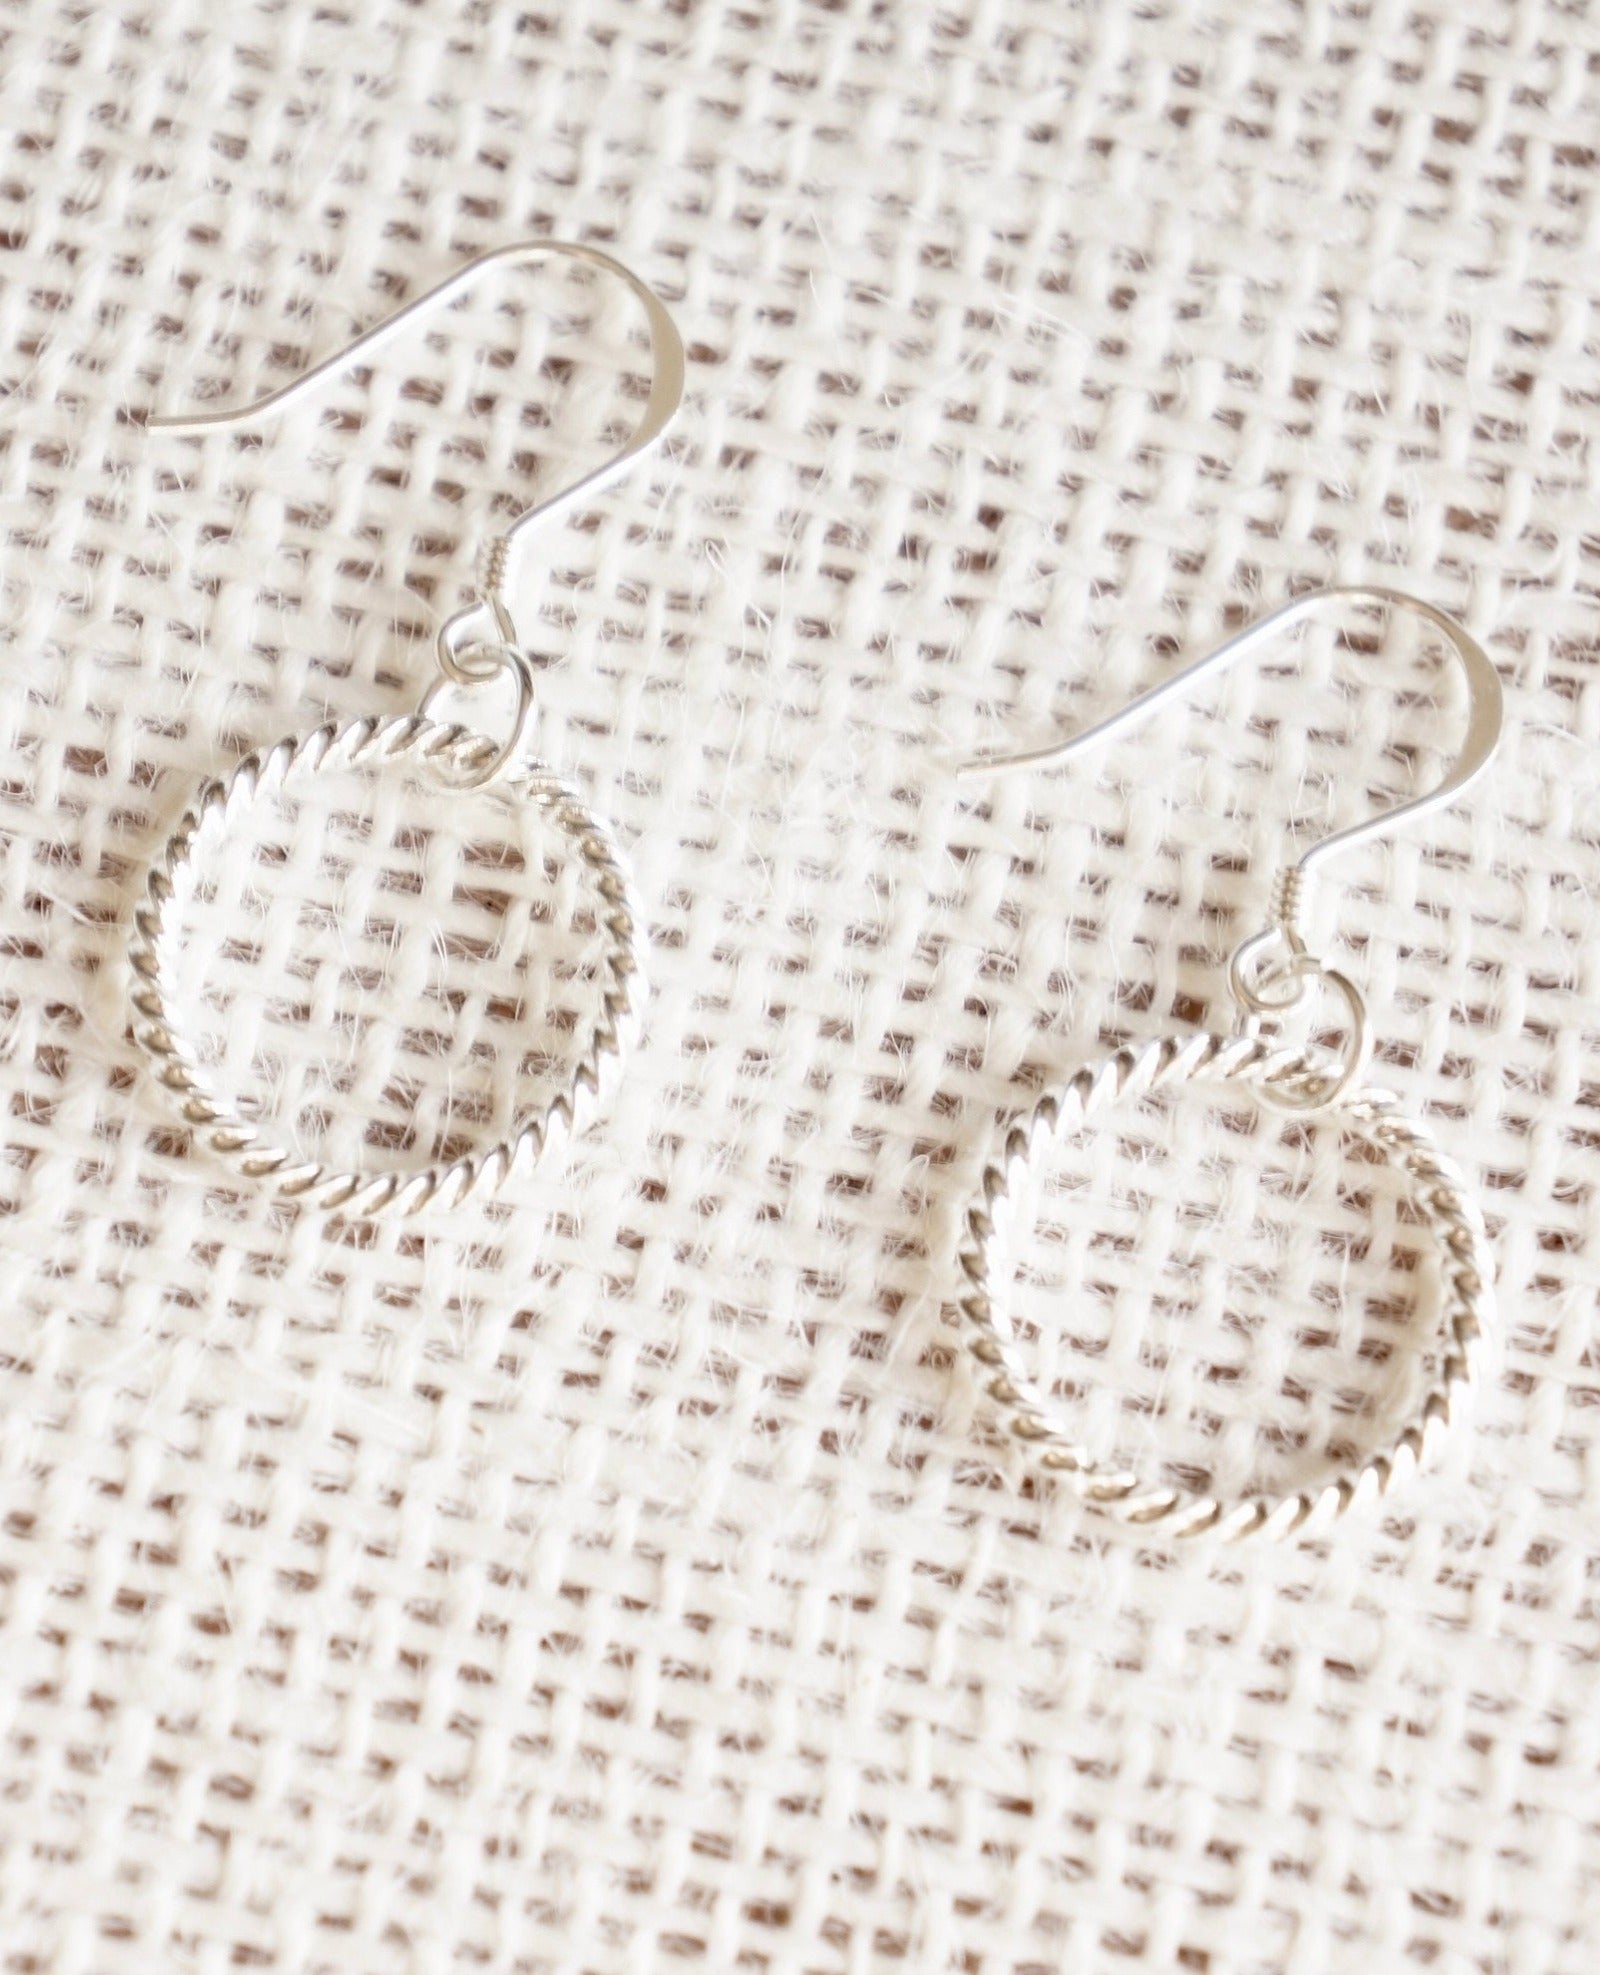 Bridesmaid Gift, Small Hoop Earrings, Endless Hoop Earring, Minimalist Jewelry, Birthday Gifts For Her, Teen Girl Gift, Best Selling Items